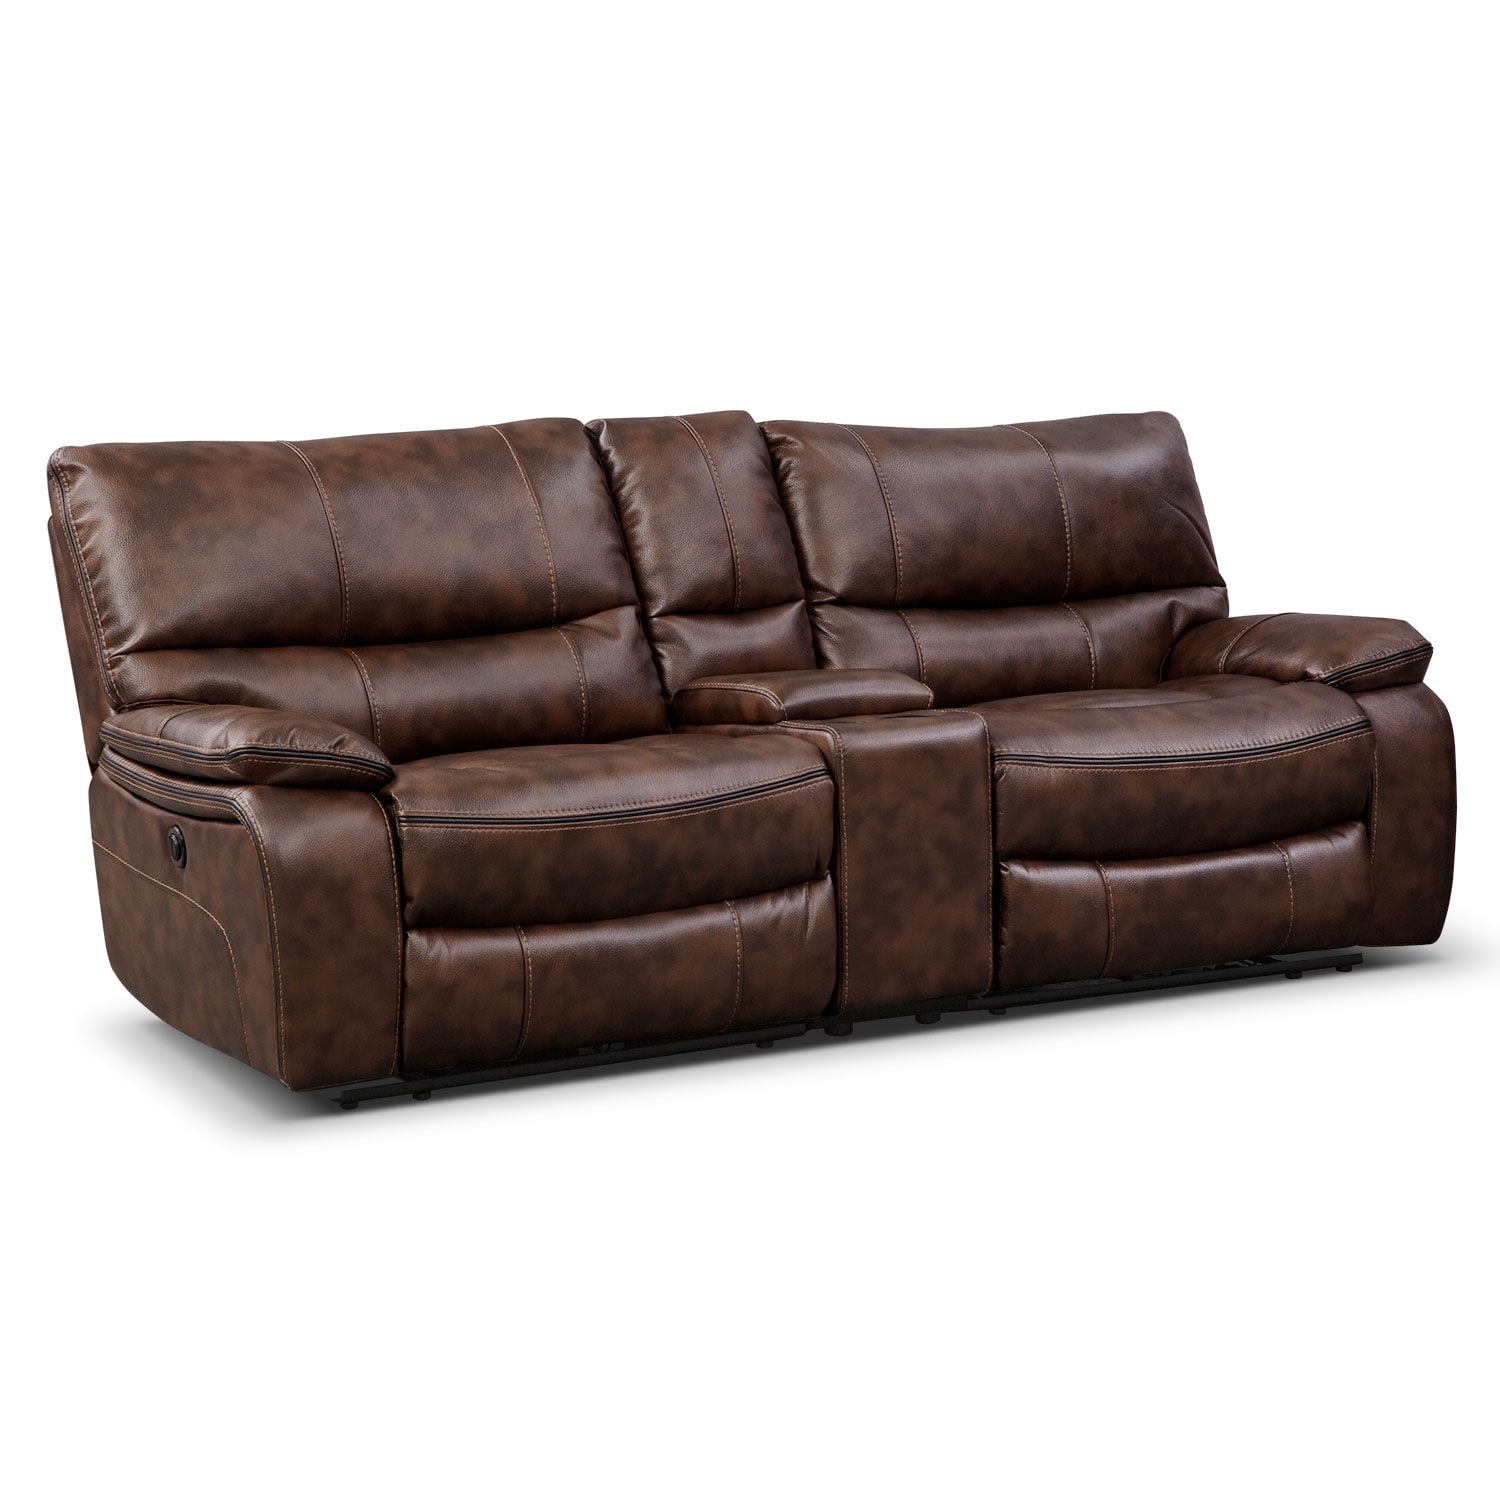 Orlando power reclining sofa with console brown value for Sofa console